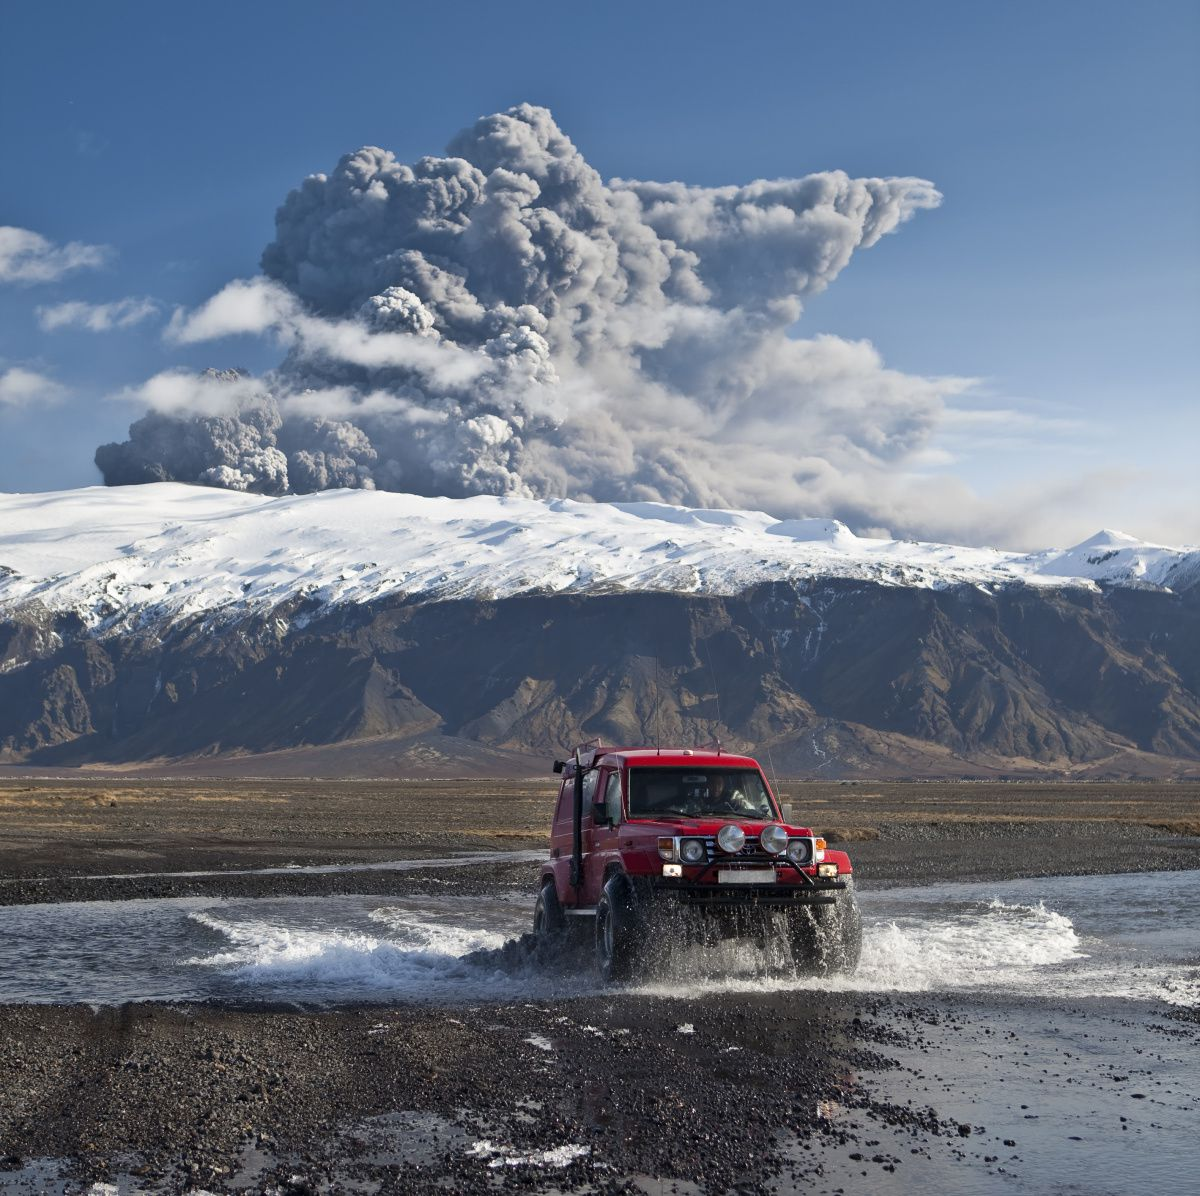 Eruption de l'Eyjafjallajökull en 2010 - photo Artic images